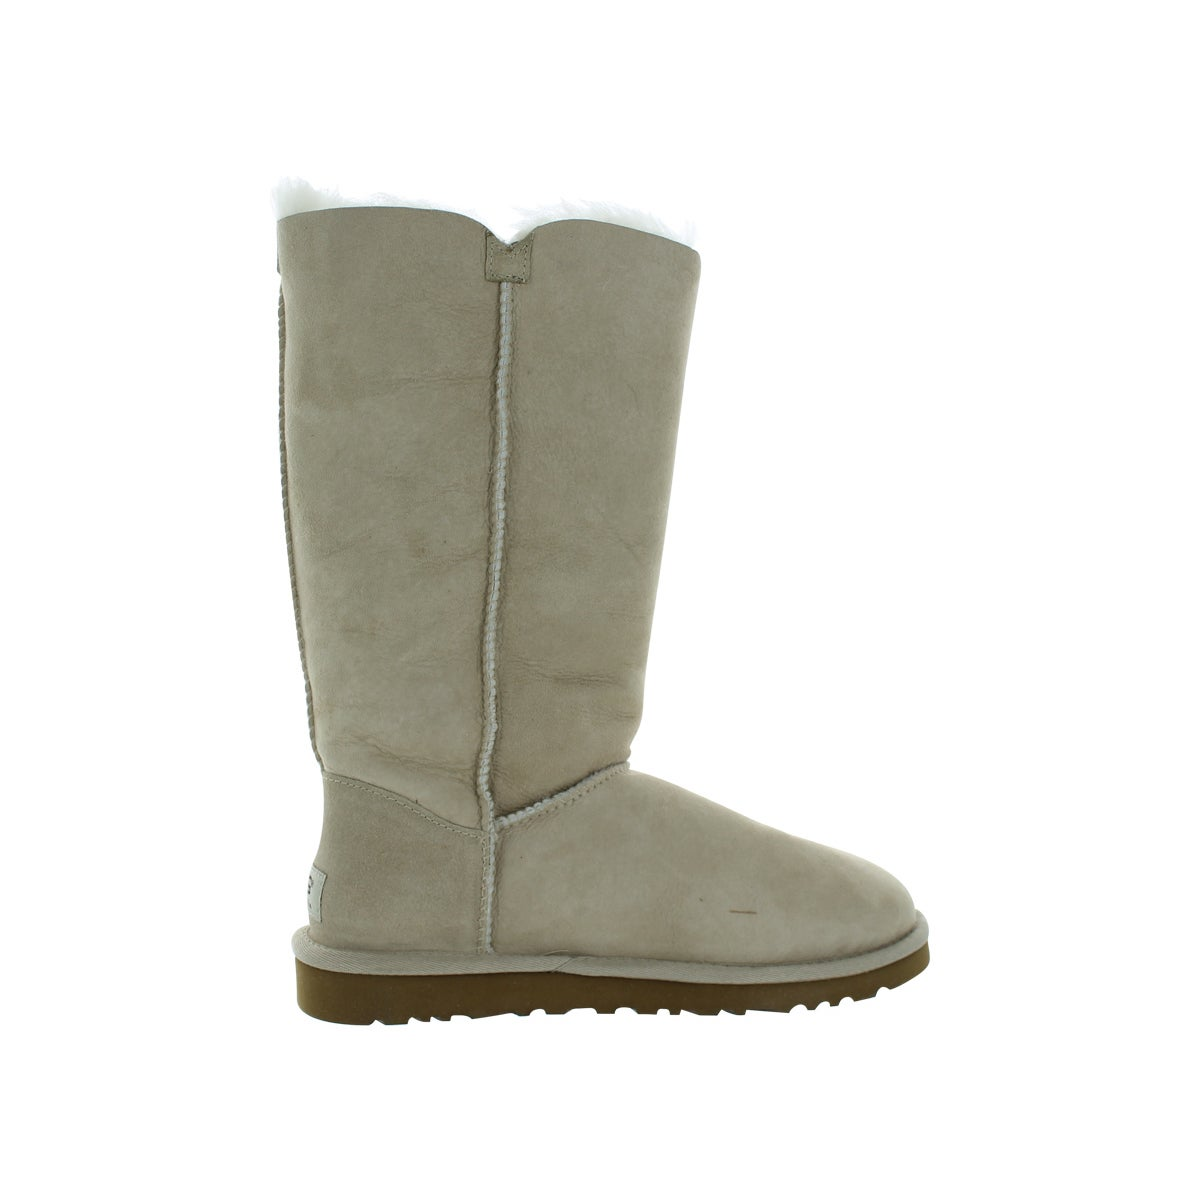 6c68c0ee1bc Ugg Boot W Bailey Button Triplet (Sand)